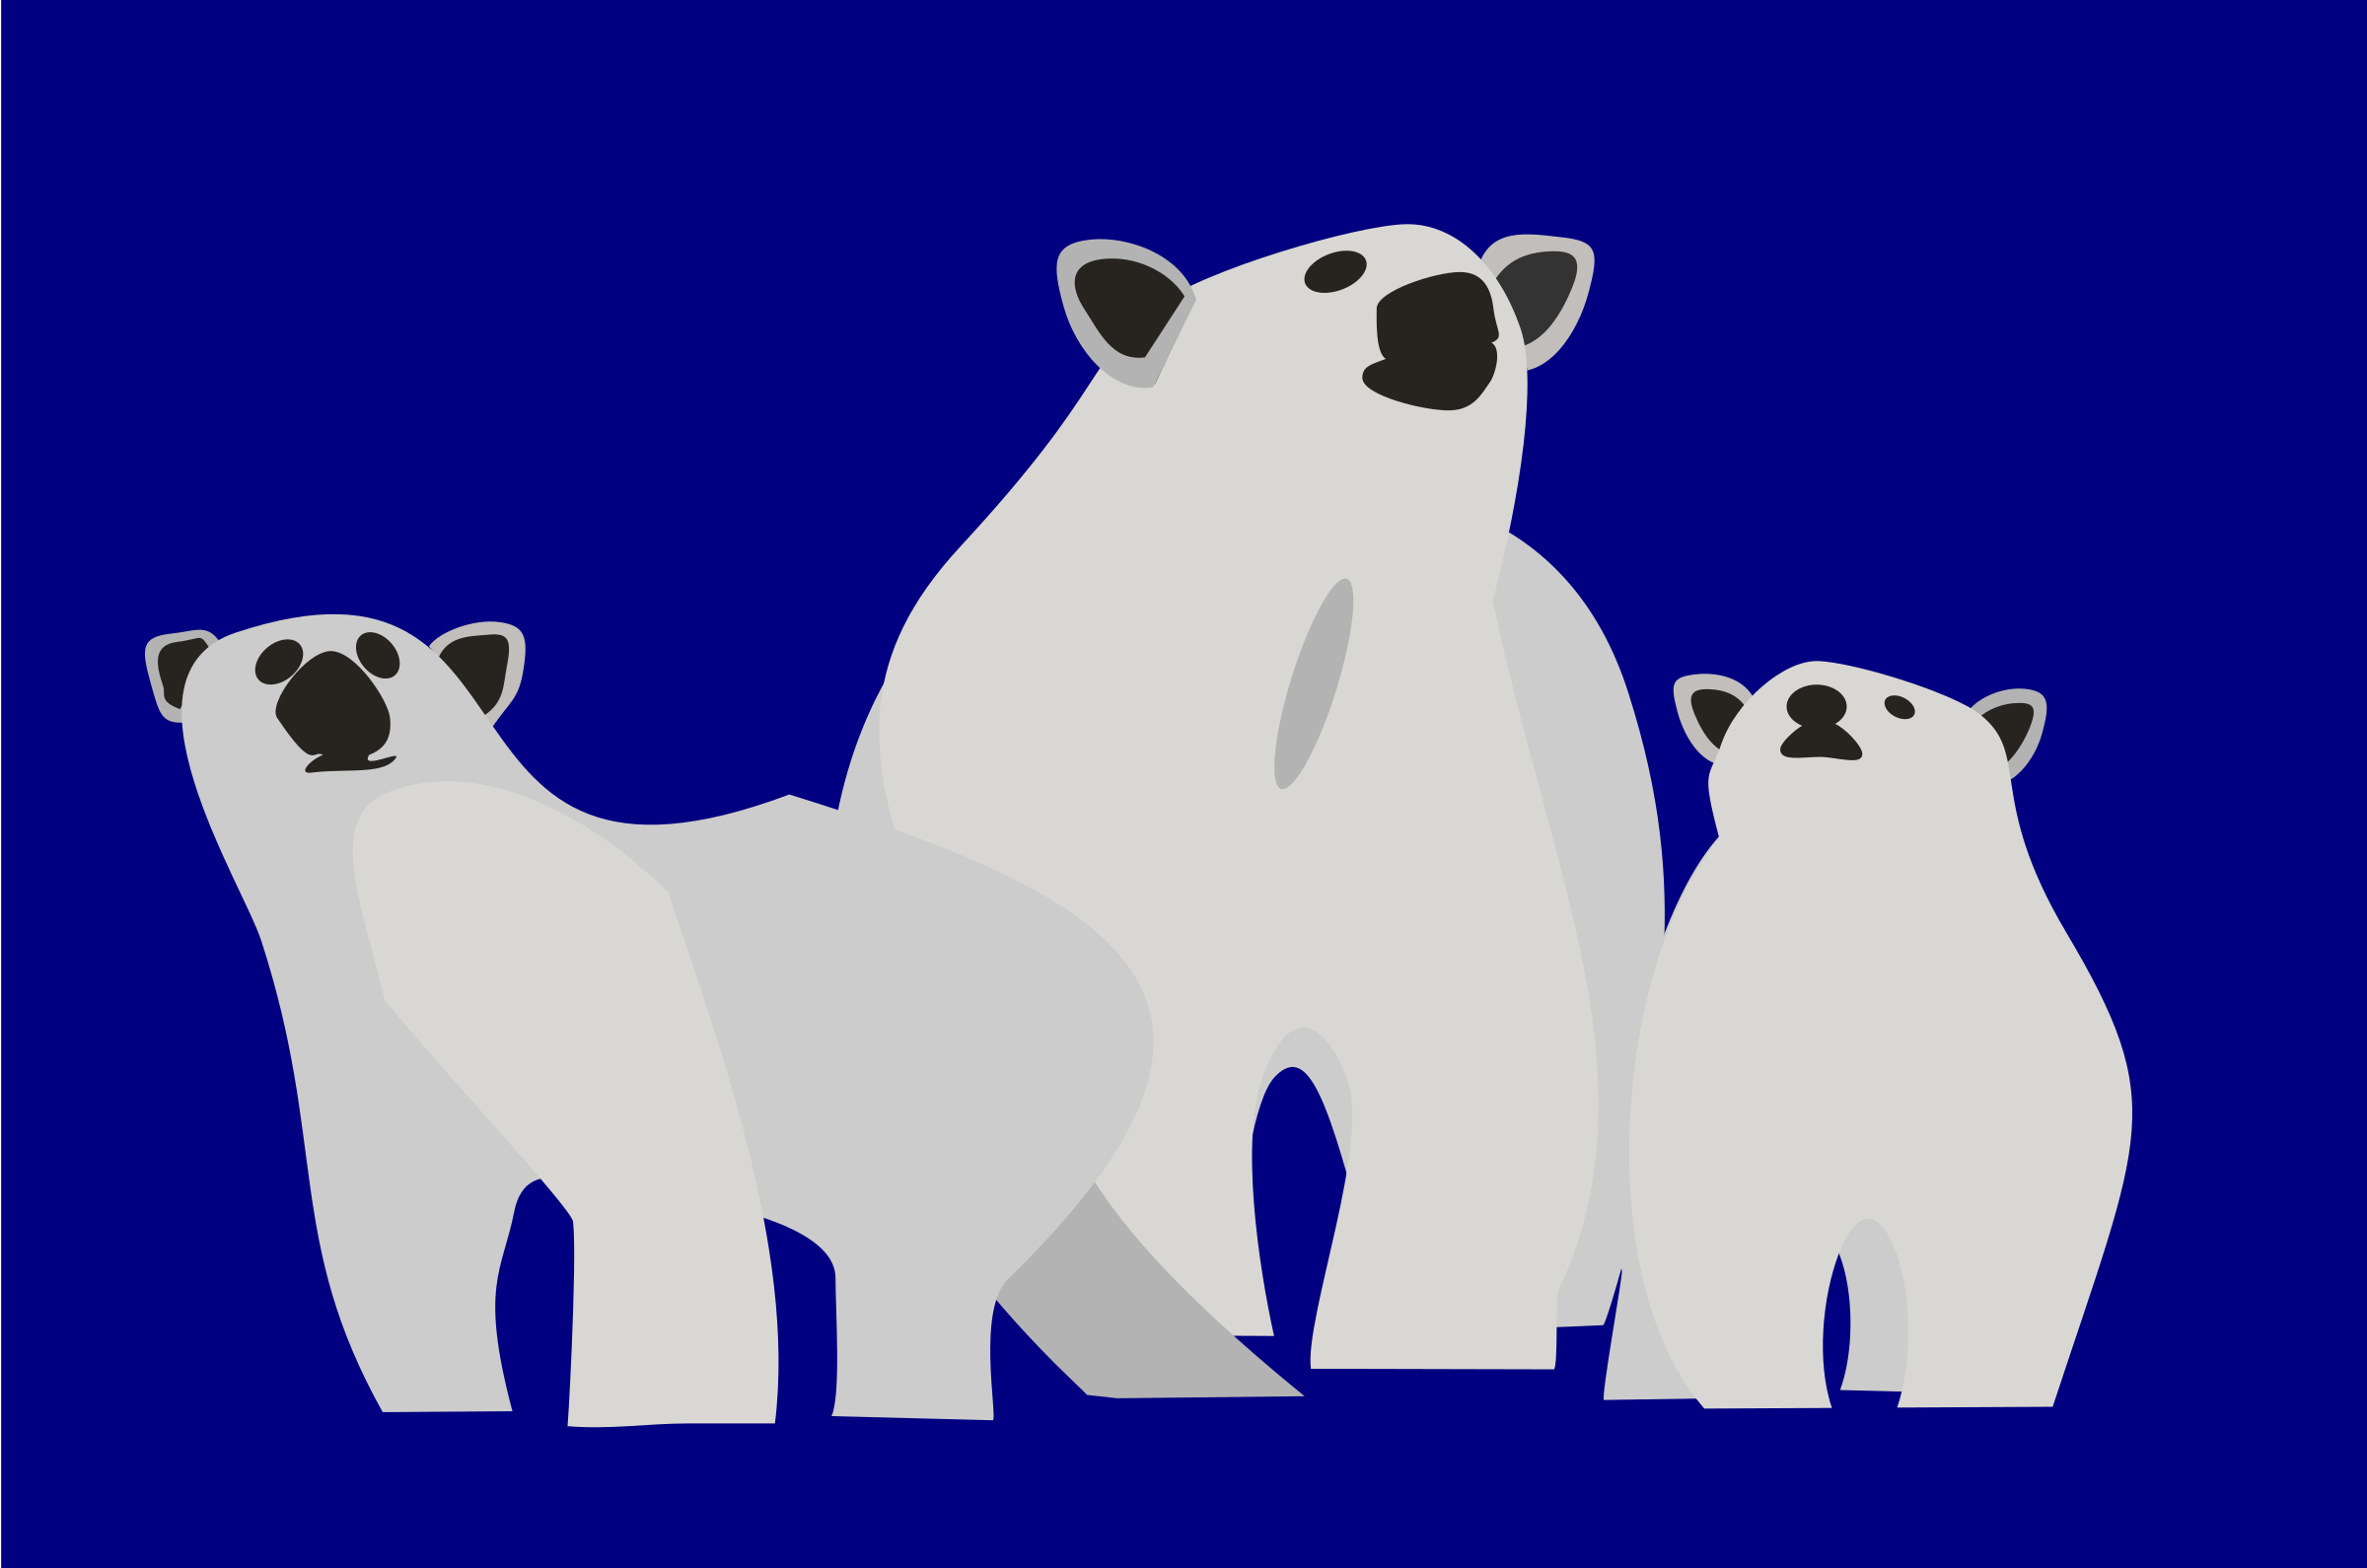 3 polarbears by user unknown